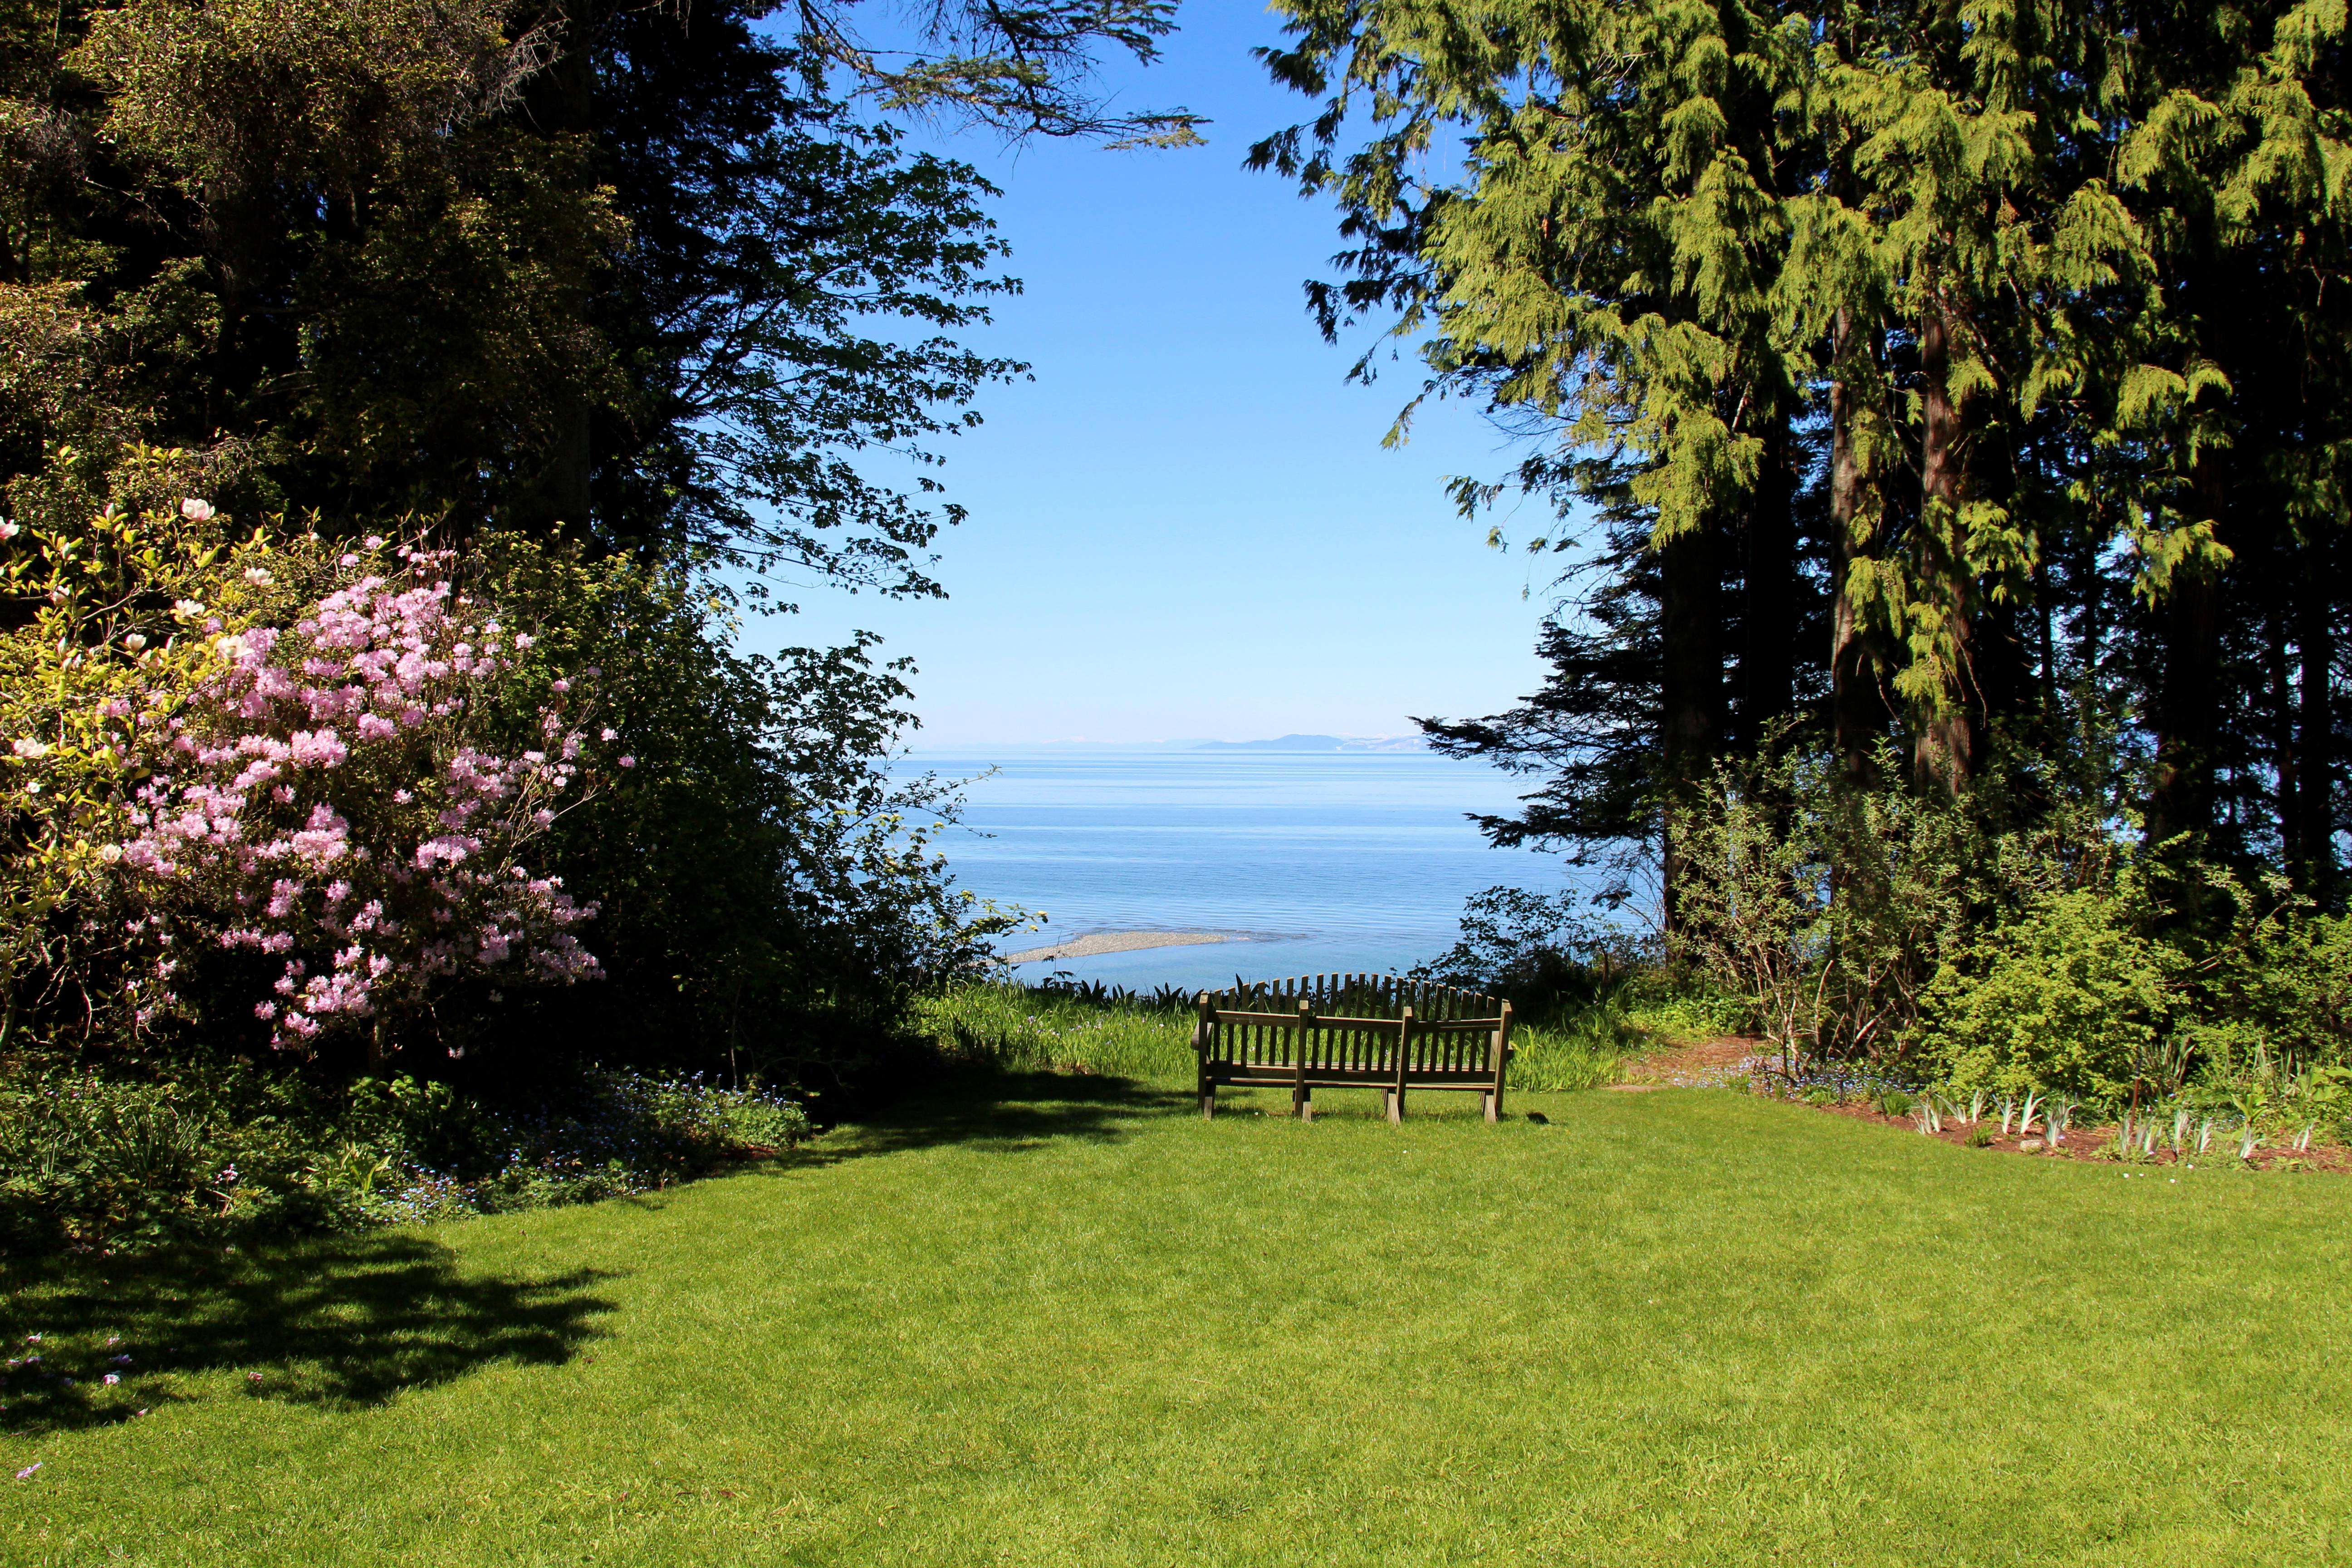 View of the Strait of Georgia from Milner Gardens and Woodland in Qualicum Beach on Vancouver Island